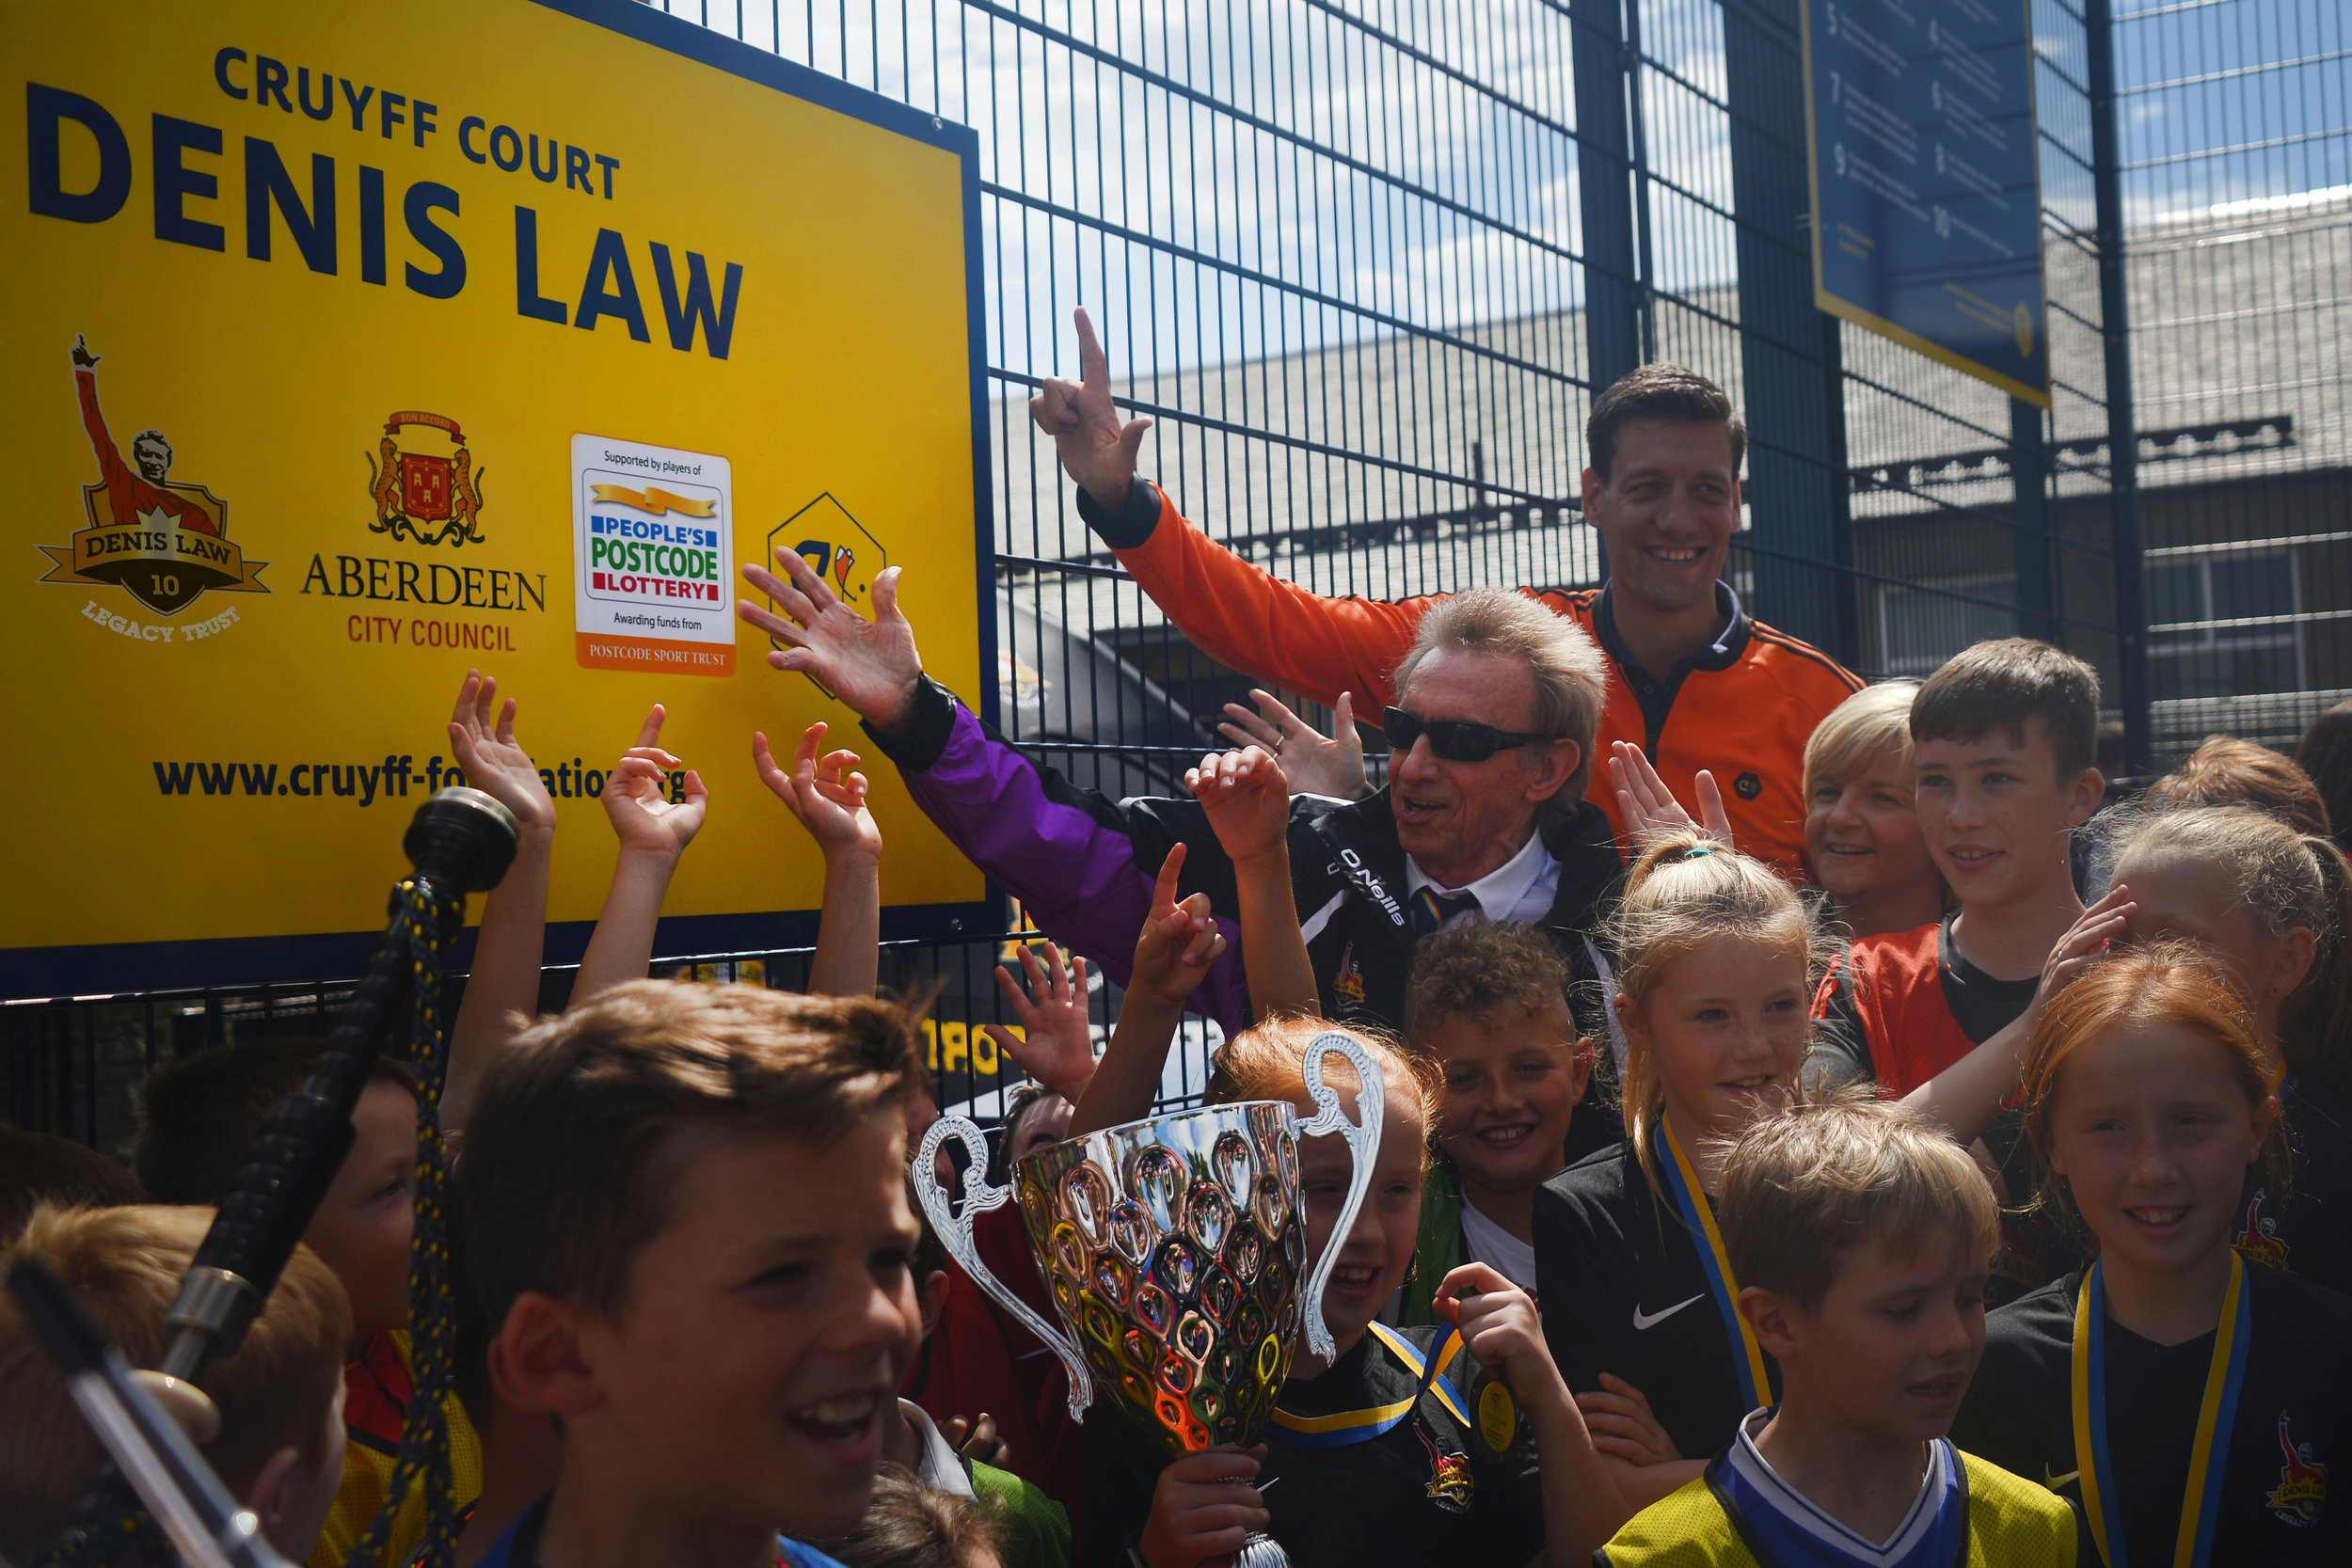 Denis Law and Niels Meijer of the Cruyff Foundation at the first Cruyff Court opening at Catherine Street.